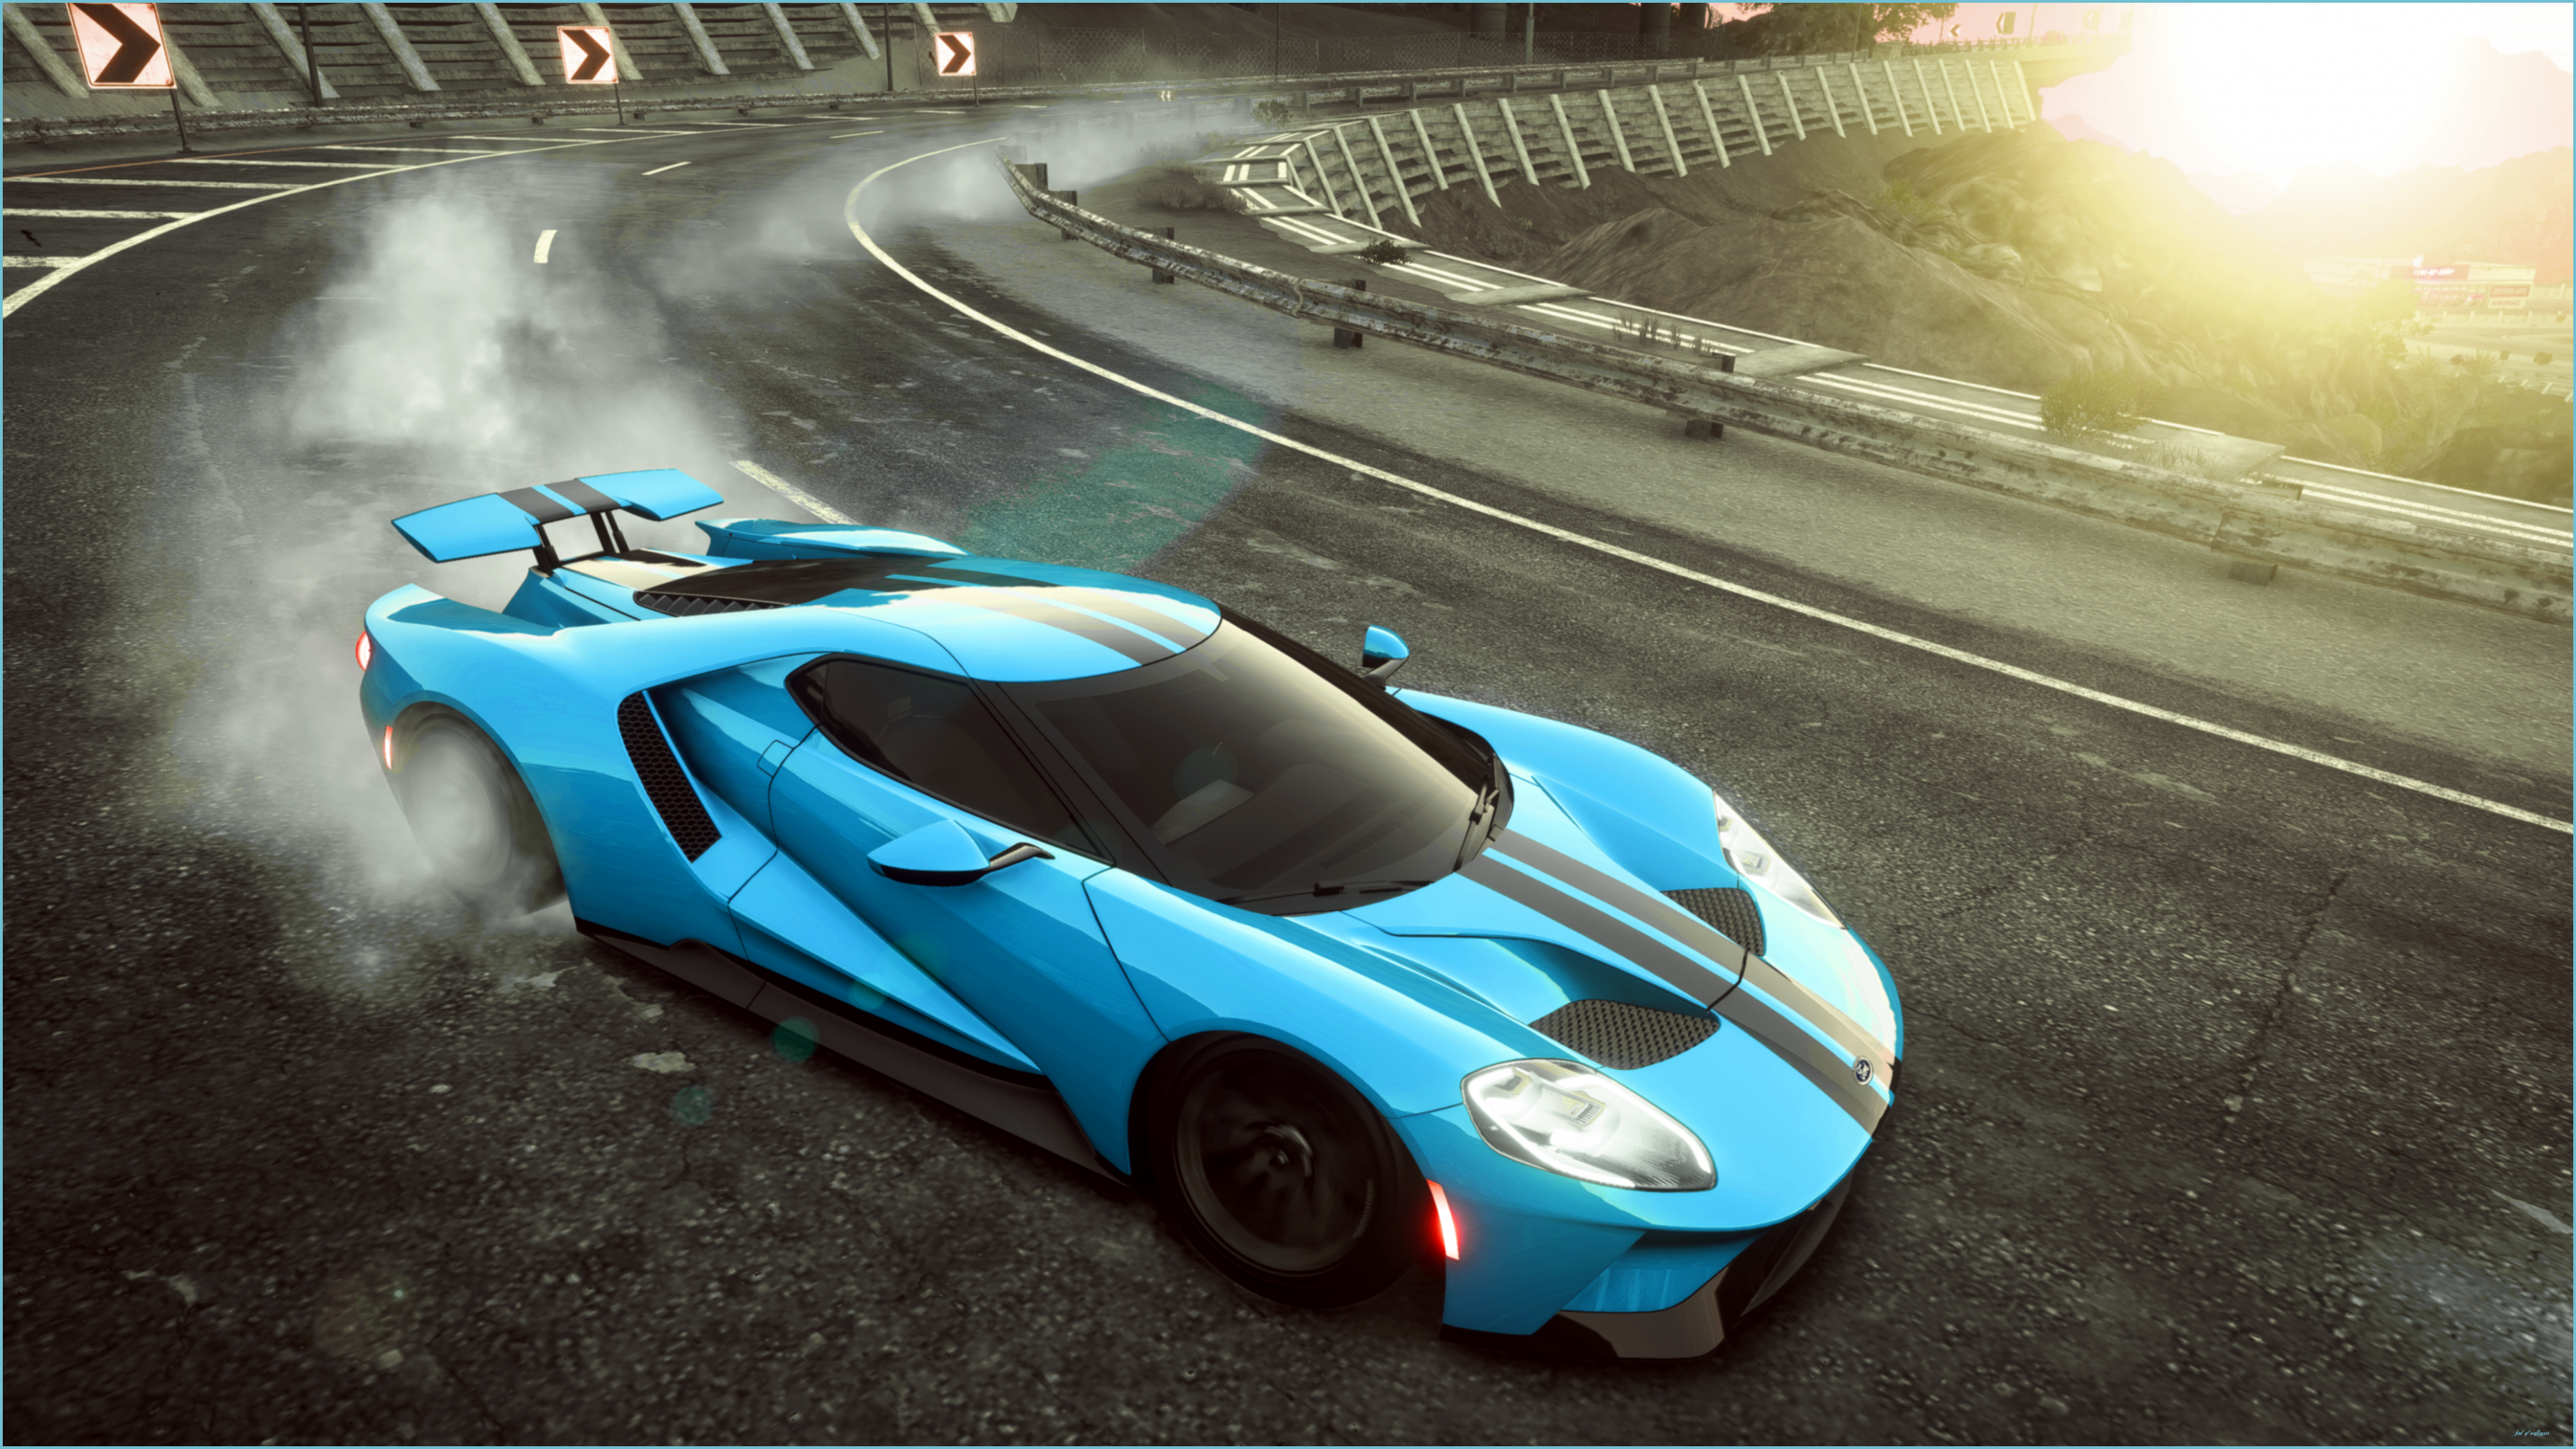 Ten Things You Wont Miss Out If You Attend Ford Gt Wallpaper Ford Gt Wallpaper Ford Gt Ford Car Ford